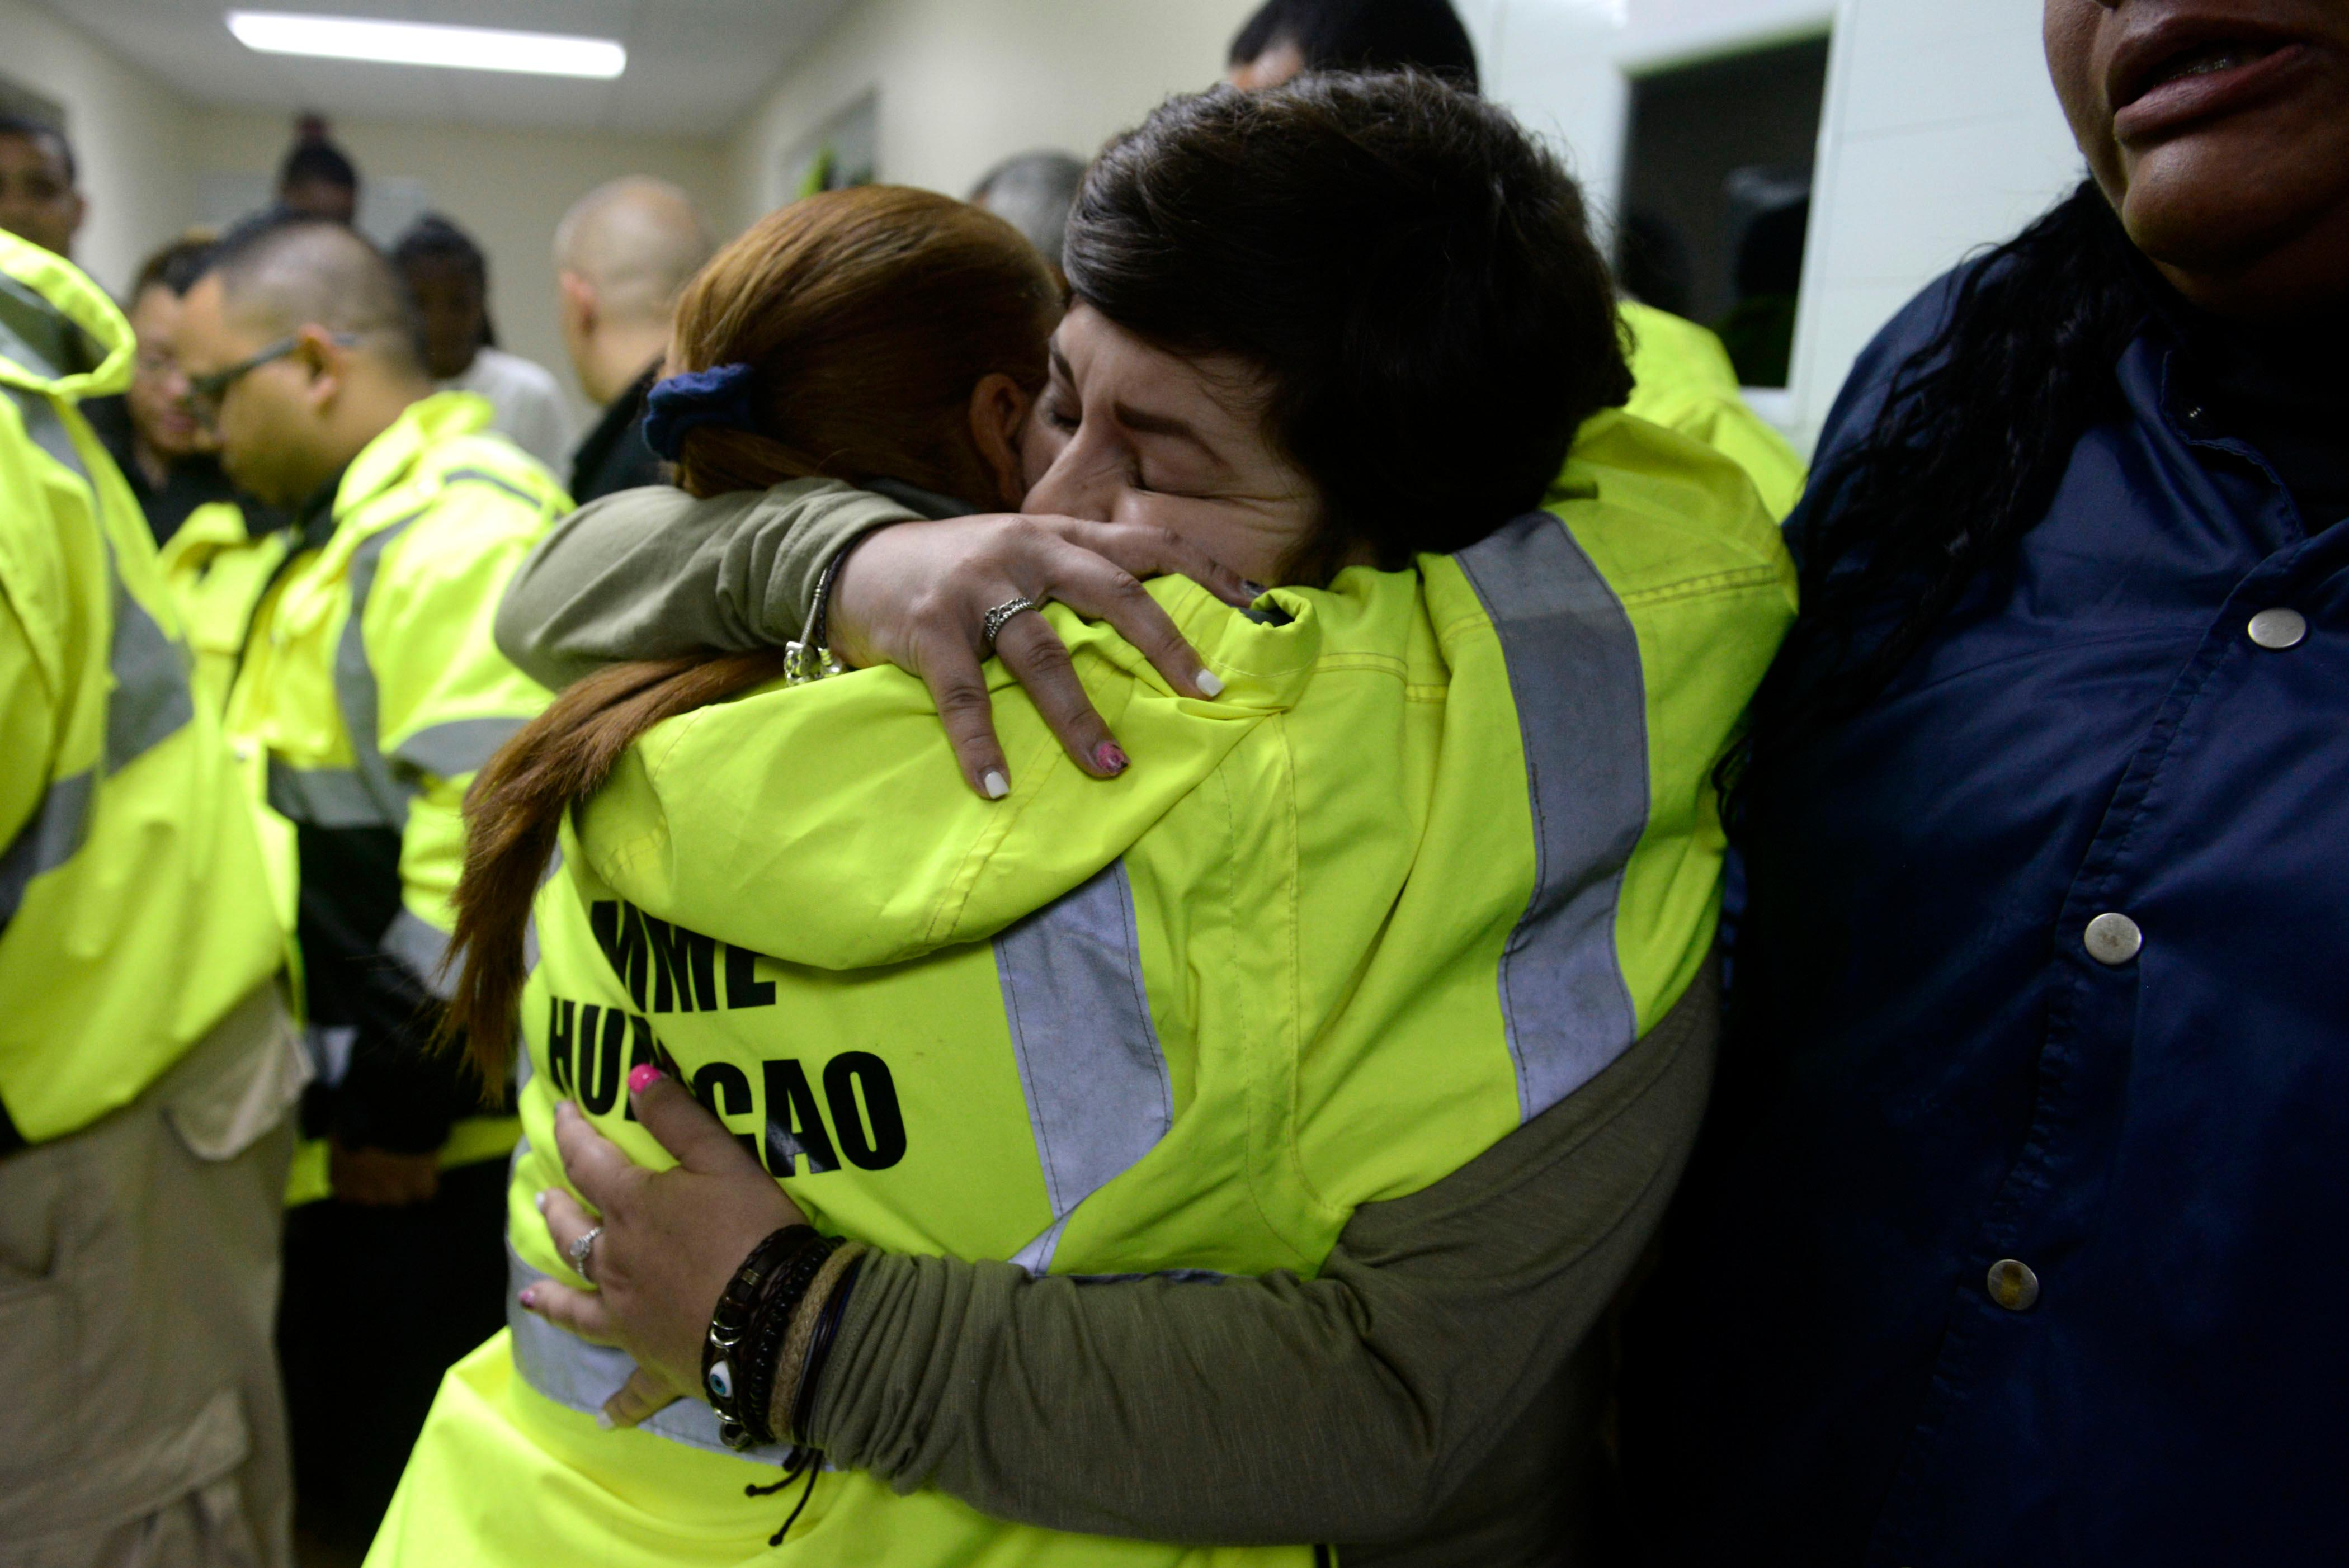 Rescue team members Candida Lozada, left, and Stephanie Rivera, right, embrace as they wait to assist in the aftermath of Hurricane Maria in Humacao, Puerto Rico, Wednesday, Sept. 20, 2017. (AP Photo/Carlos Giusti)